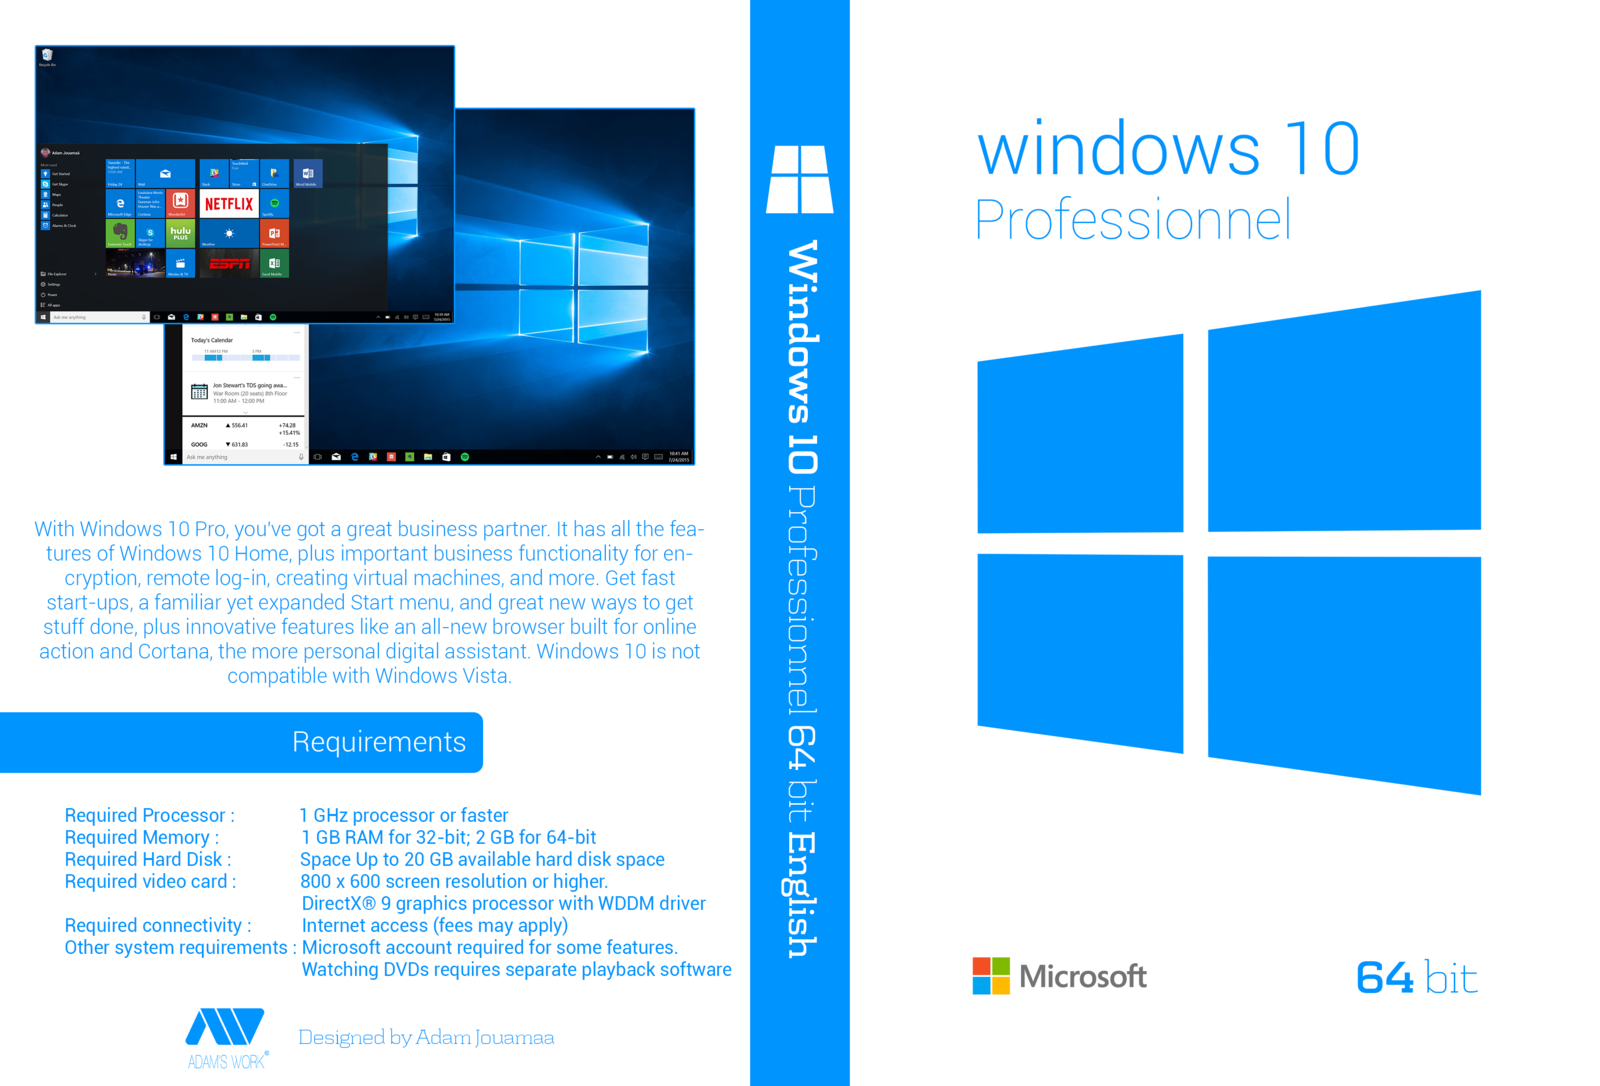 Download Windows 10 Pro Agosto 2016 x64 PT-BR Download Windows 10 Pro Agosto 2016 x64 PT-BR Windows 2B10 2BPro 2B  2BXANDAODOWNLOAD